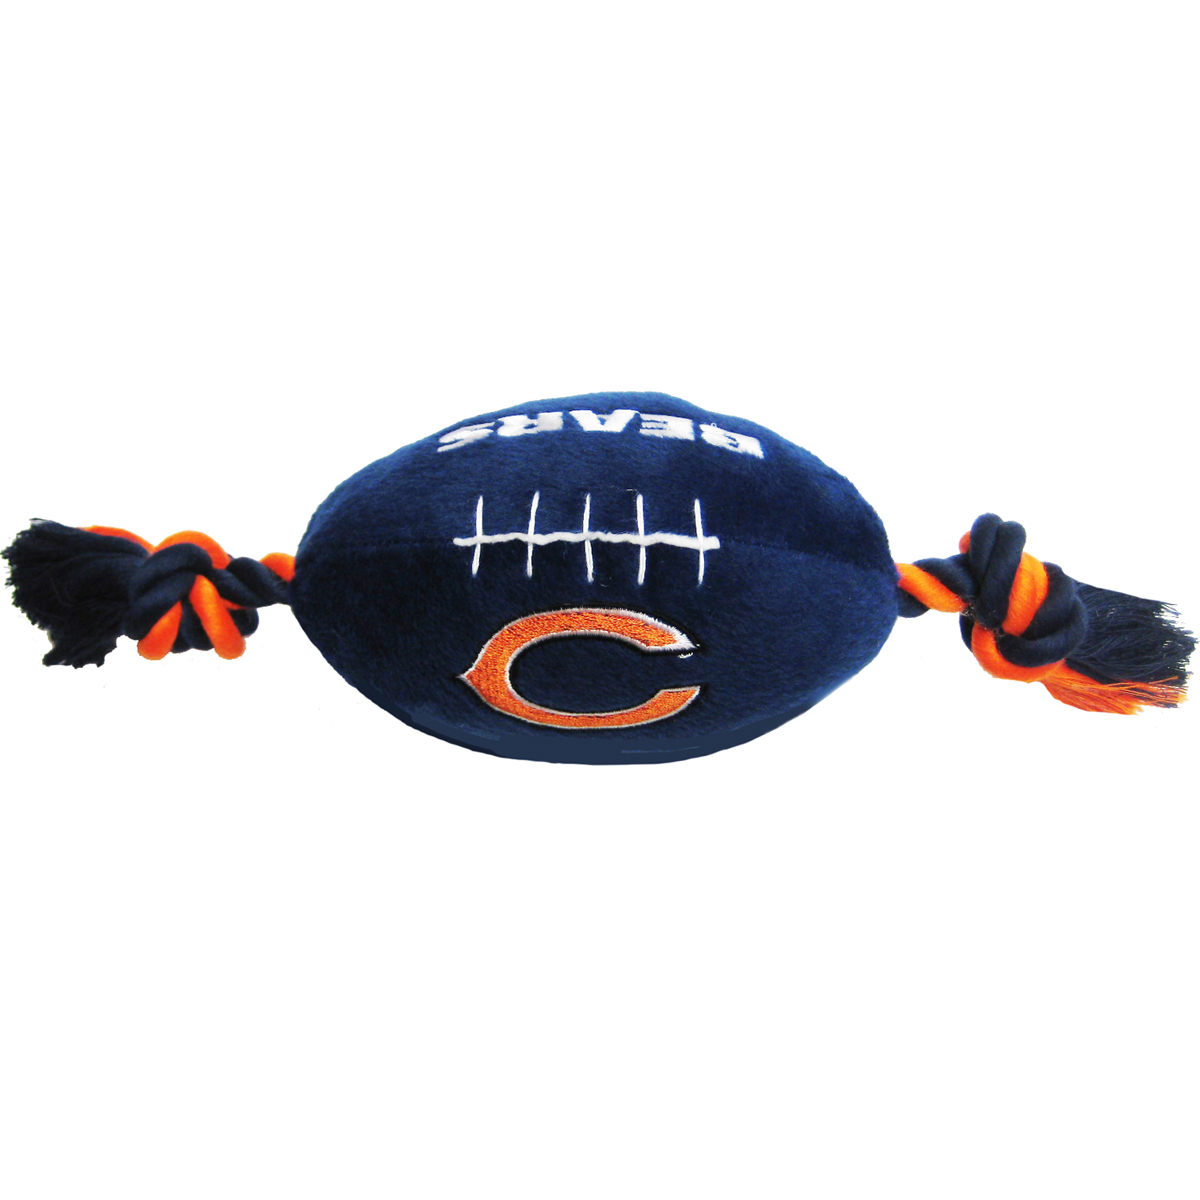 "First Chicago Bears Plush Football Rope Dog Toy,10"" x 4"",Each,CHI-3033 CHI-3033"